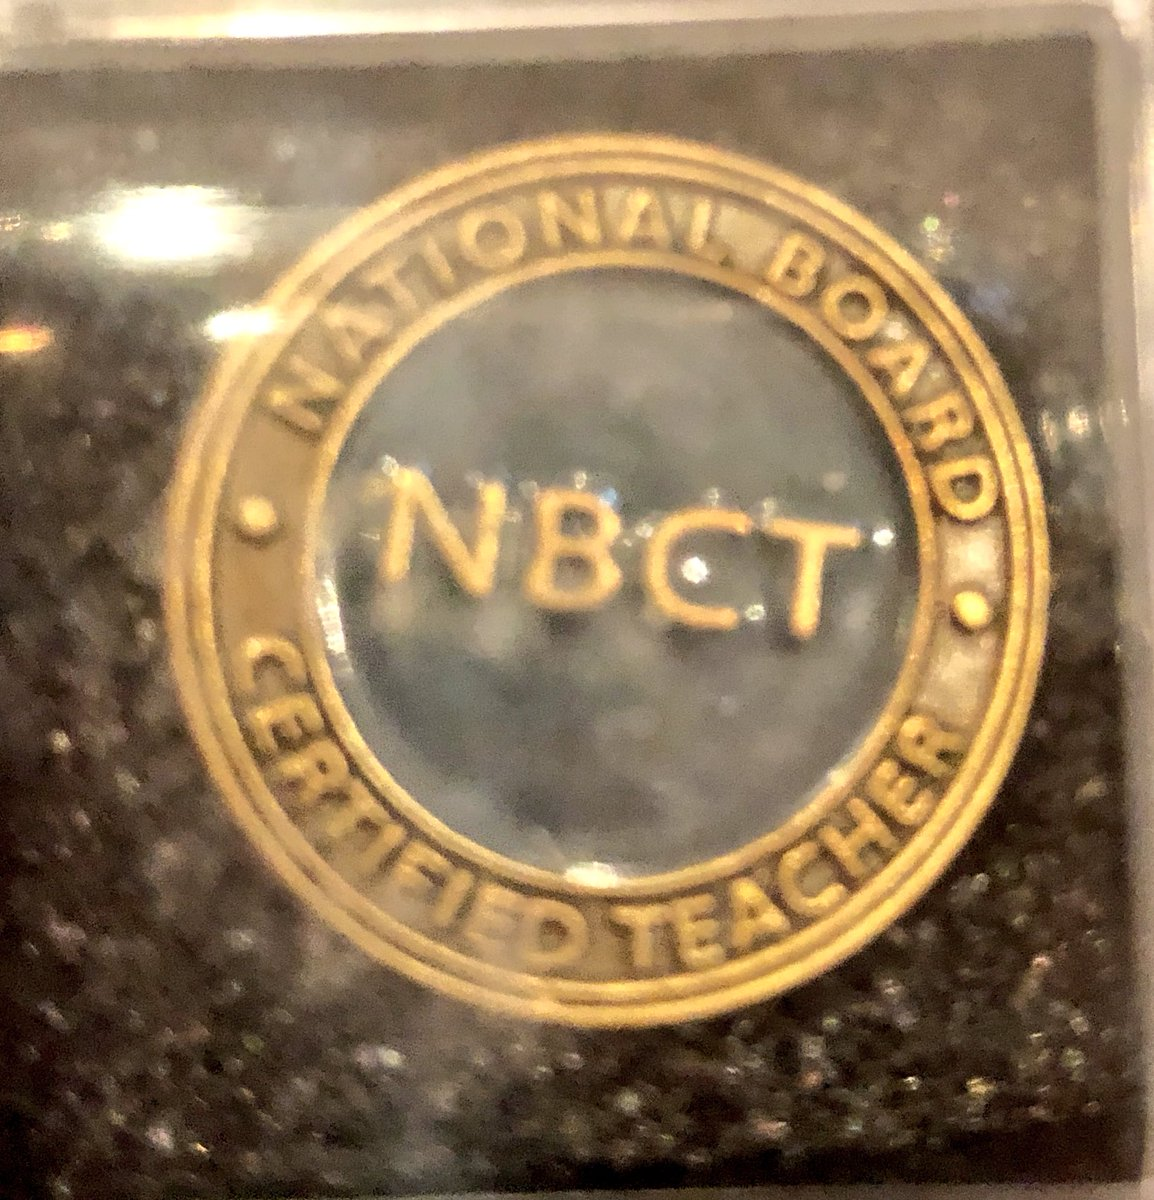 Helen Heidi Blevins Nbct On Twitter I Am A National Board